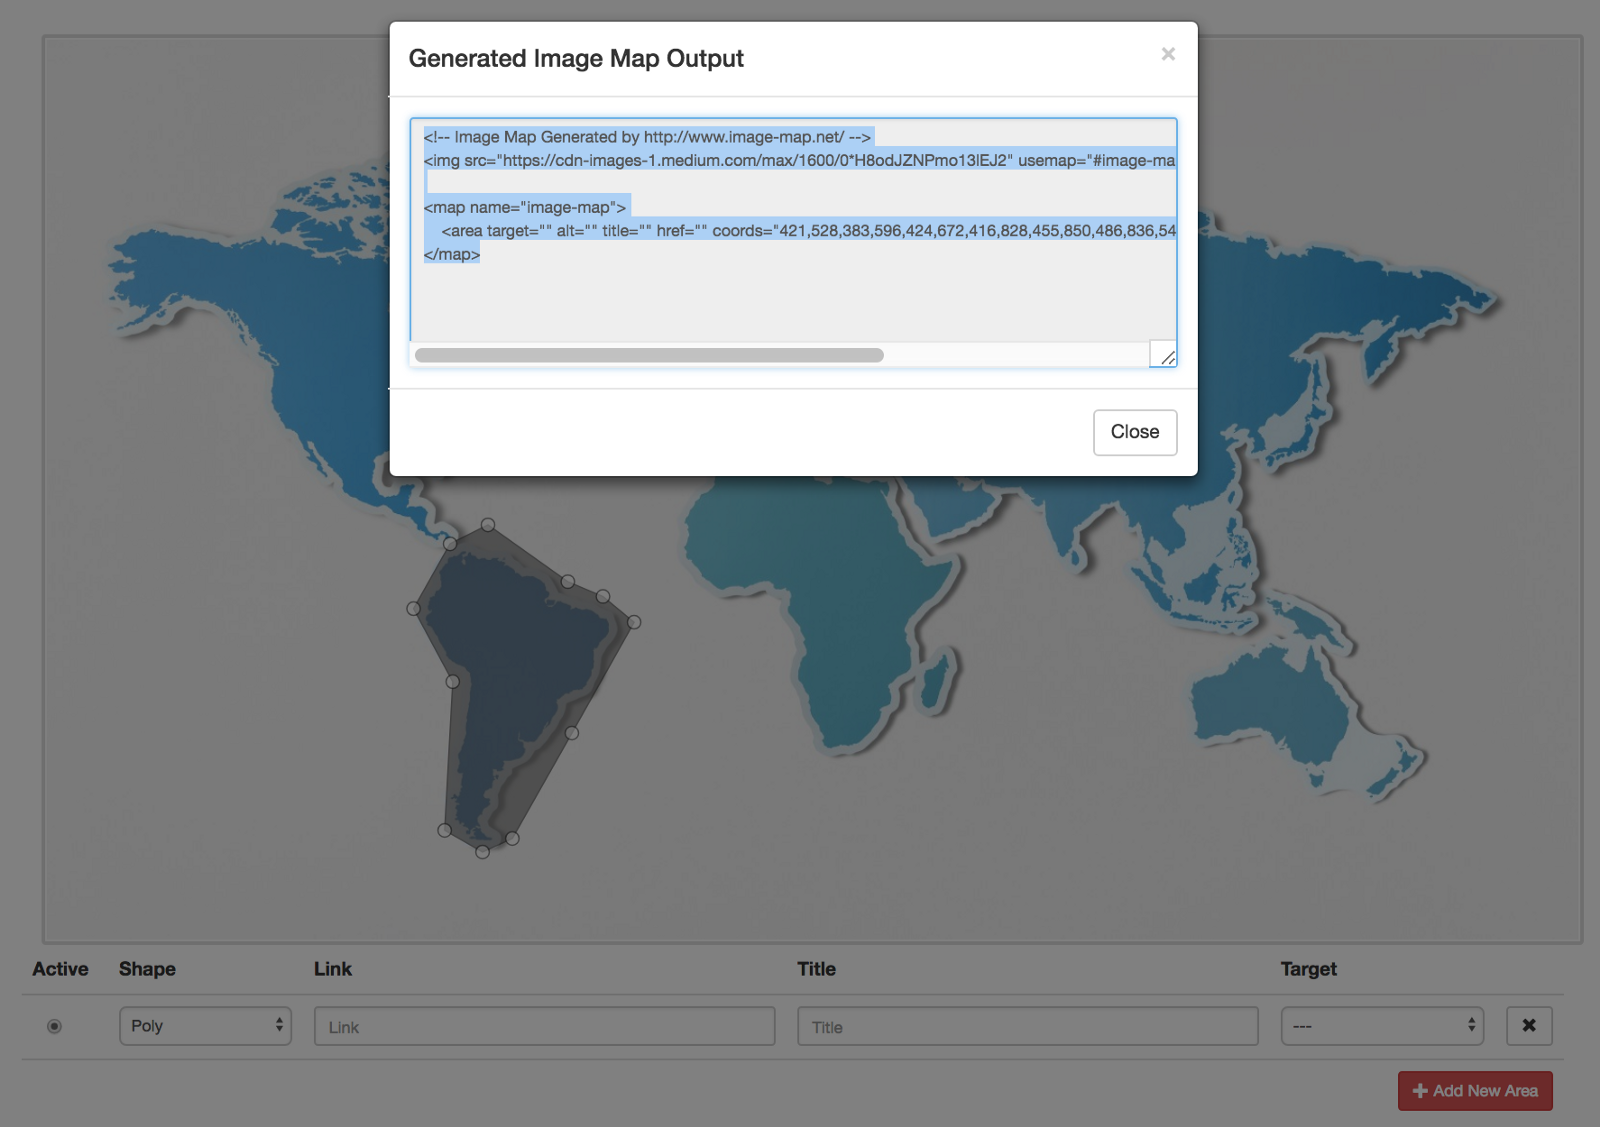 How to Use jQuery and HTML5 <Map> Tag to Highlight Image Areas on